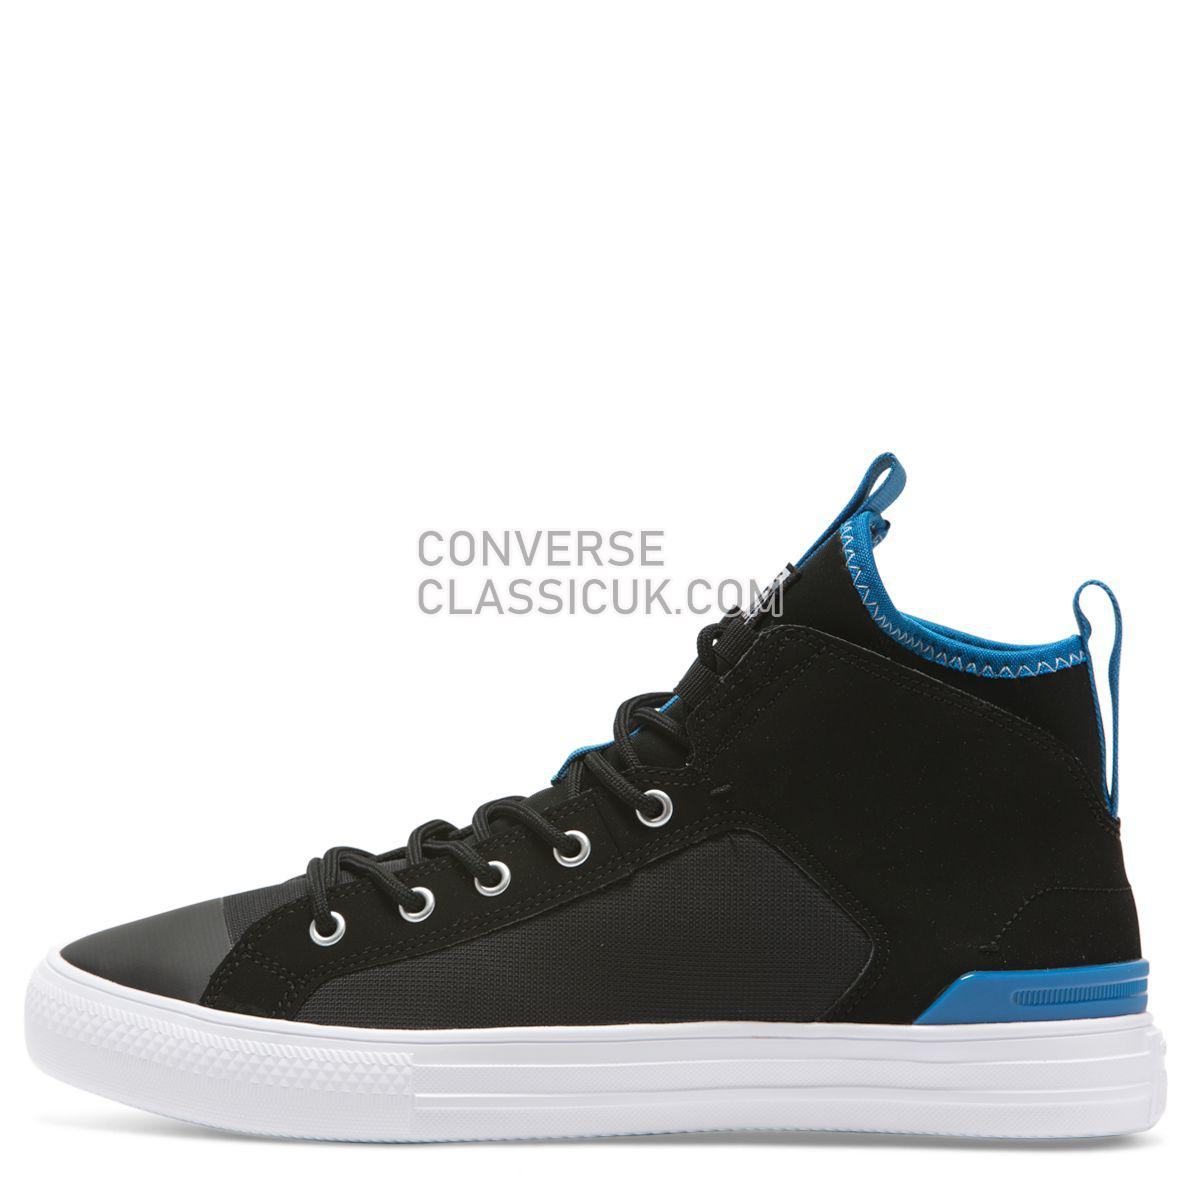 Converse Chuck Taylor All Star Ultra Cons Force Mid Black Mens Womens Unisex 165340 Black/Imperial Blue/White Shoes